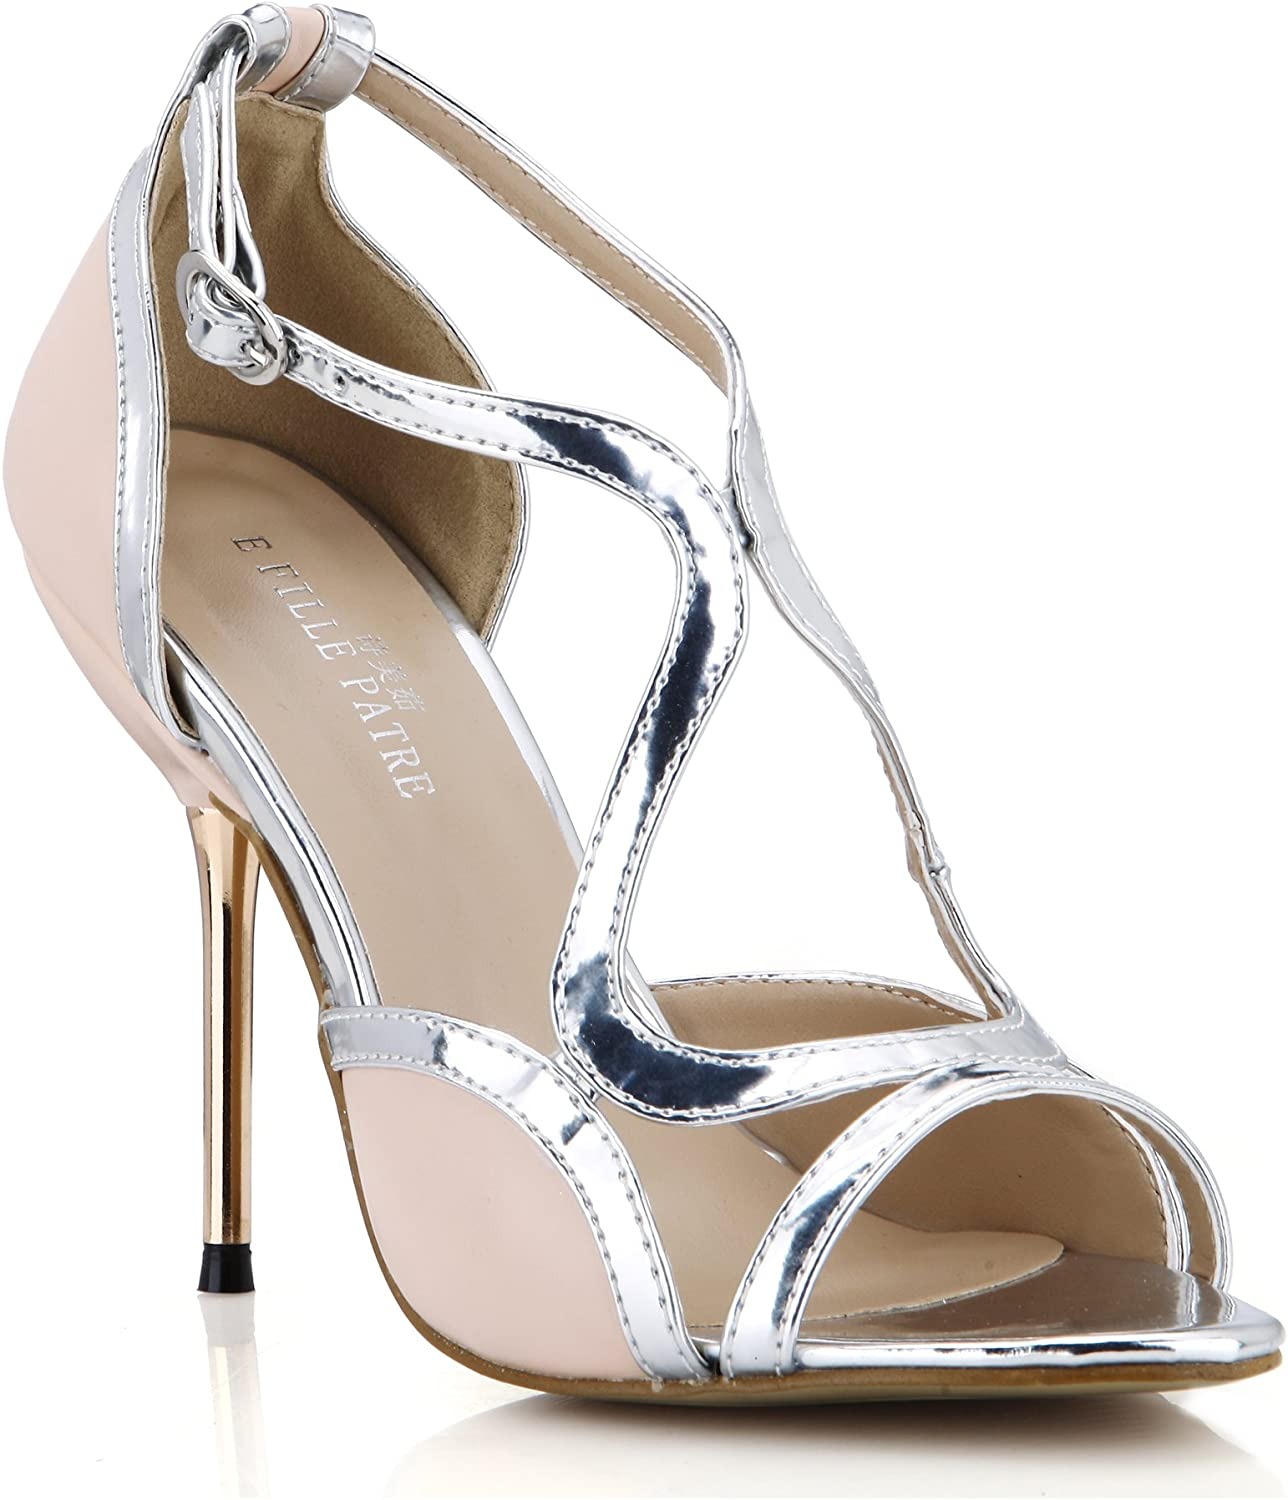 Dolphin Women Silver Pink Open Toe High Heel Pumps Work Cocktail Party shoes Carpet Dress Sandals SM000040